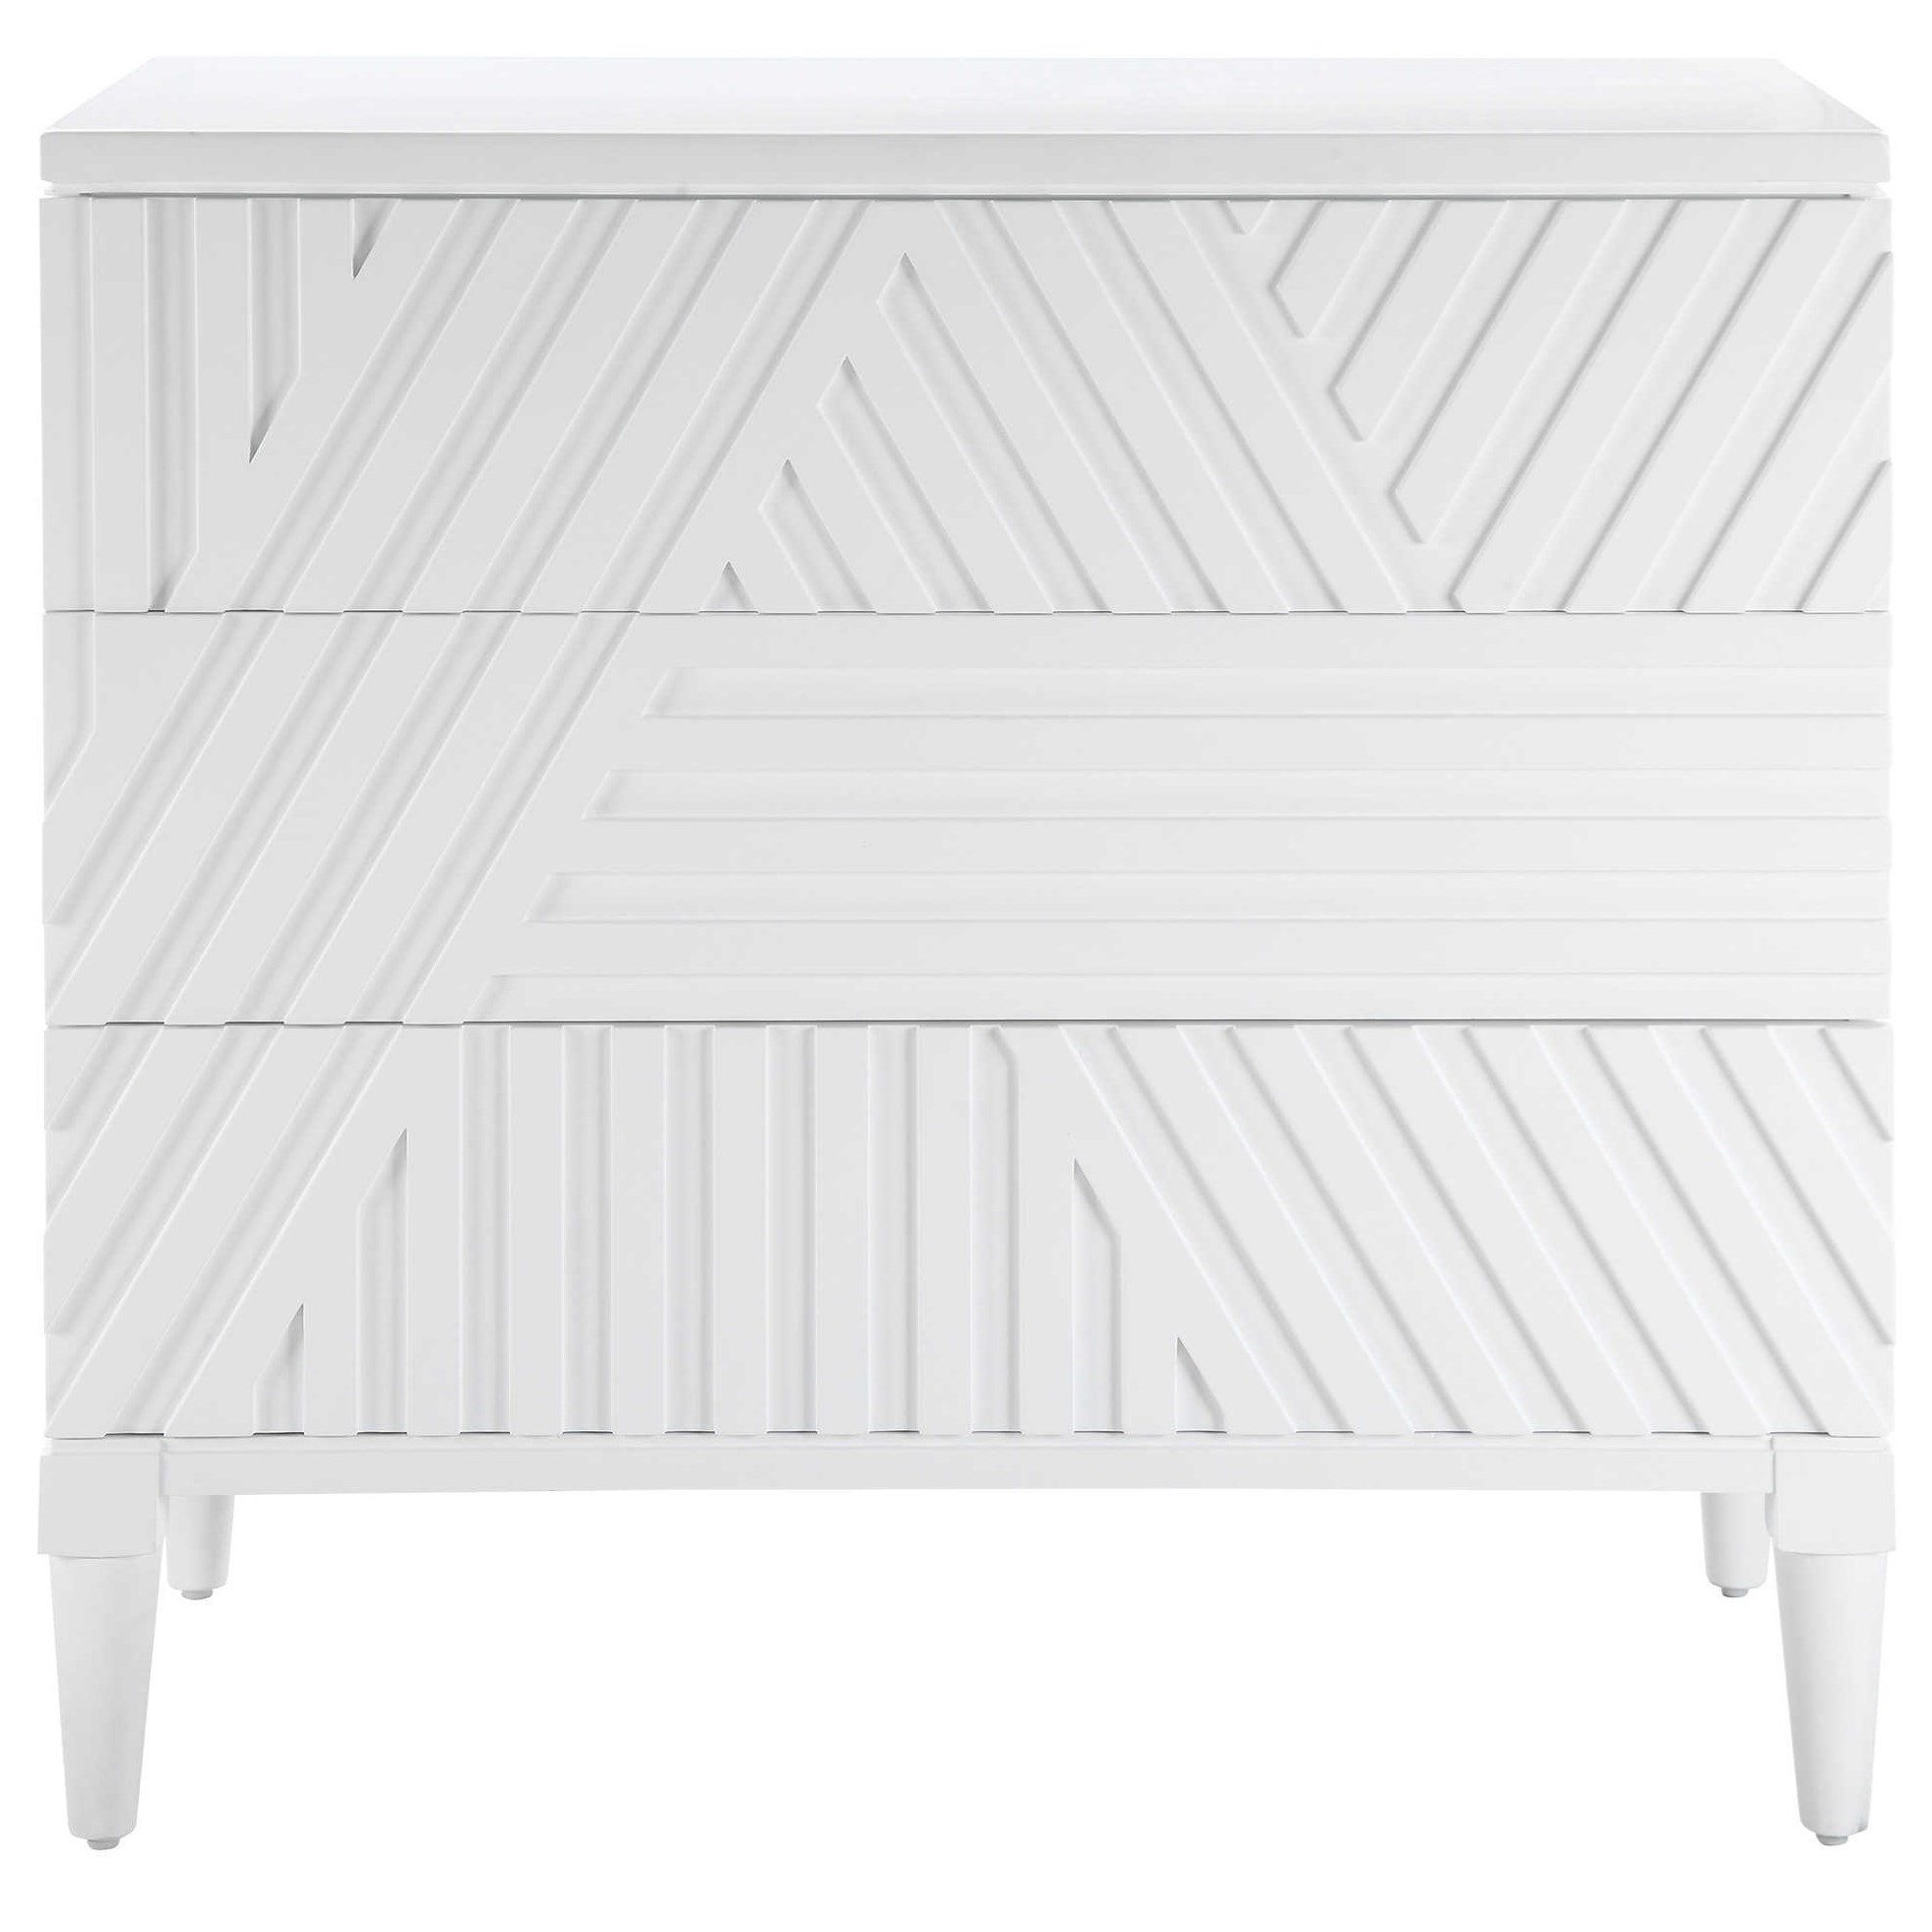 Accent Furniture - Chests Colby White Drawer Chest by Uttermost at Factory Direct Furniture